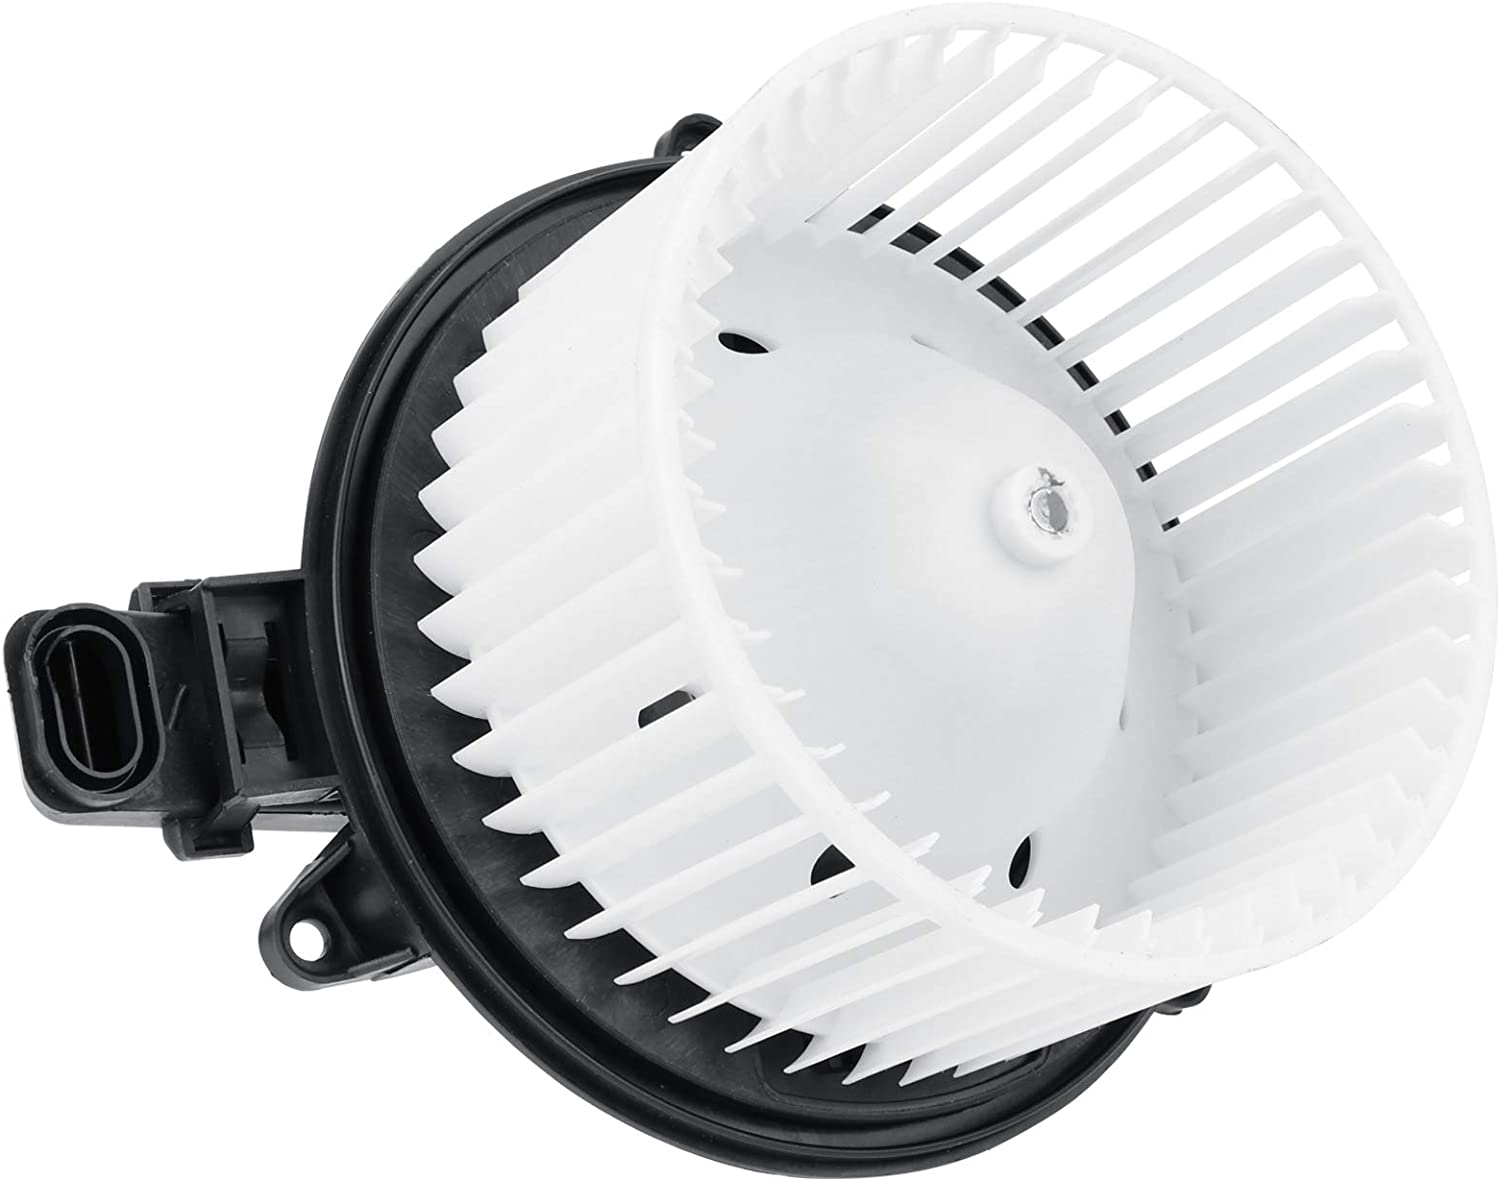 09-17 Navigator Lincoln Front HVAC Blower Motor Assembly Compatible with Ford Replacement AC Heater Blower Motor With Fan 09-17 Expedition 09-14 F150